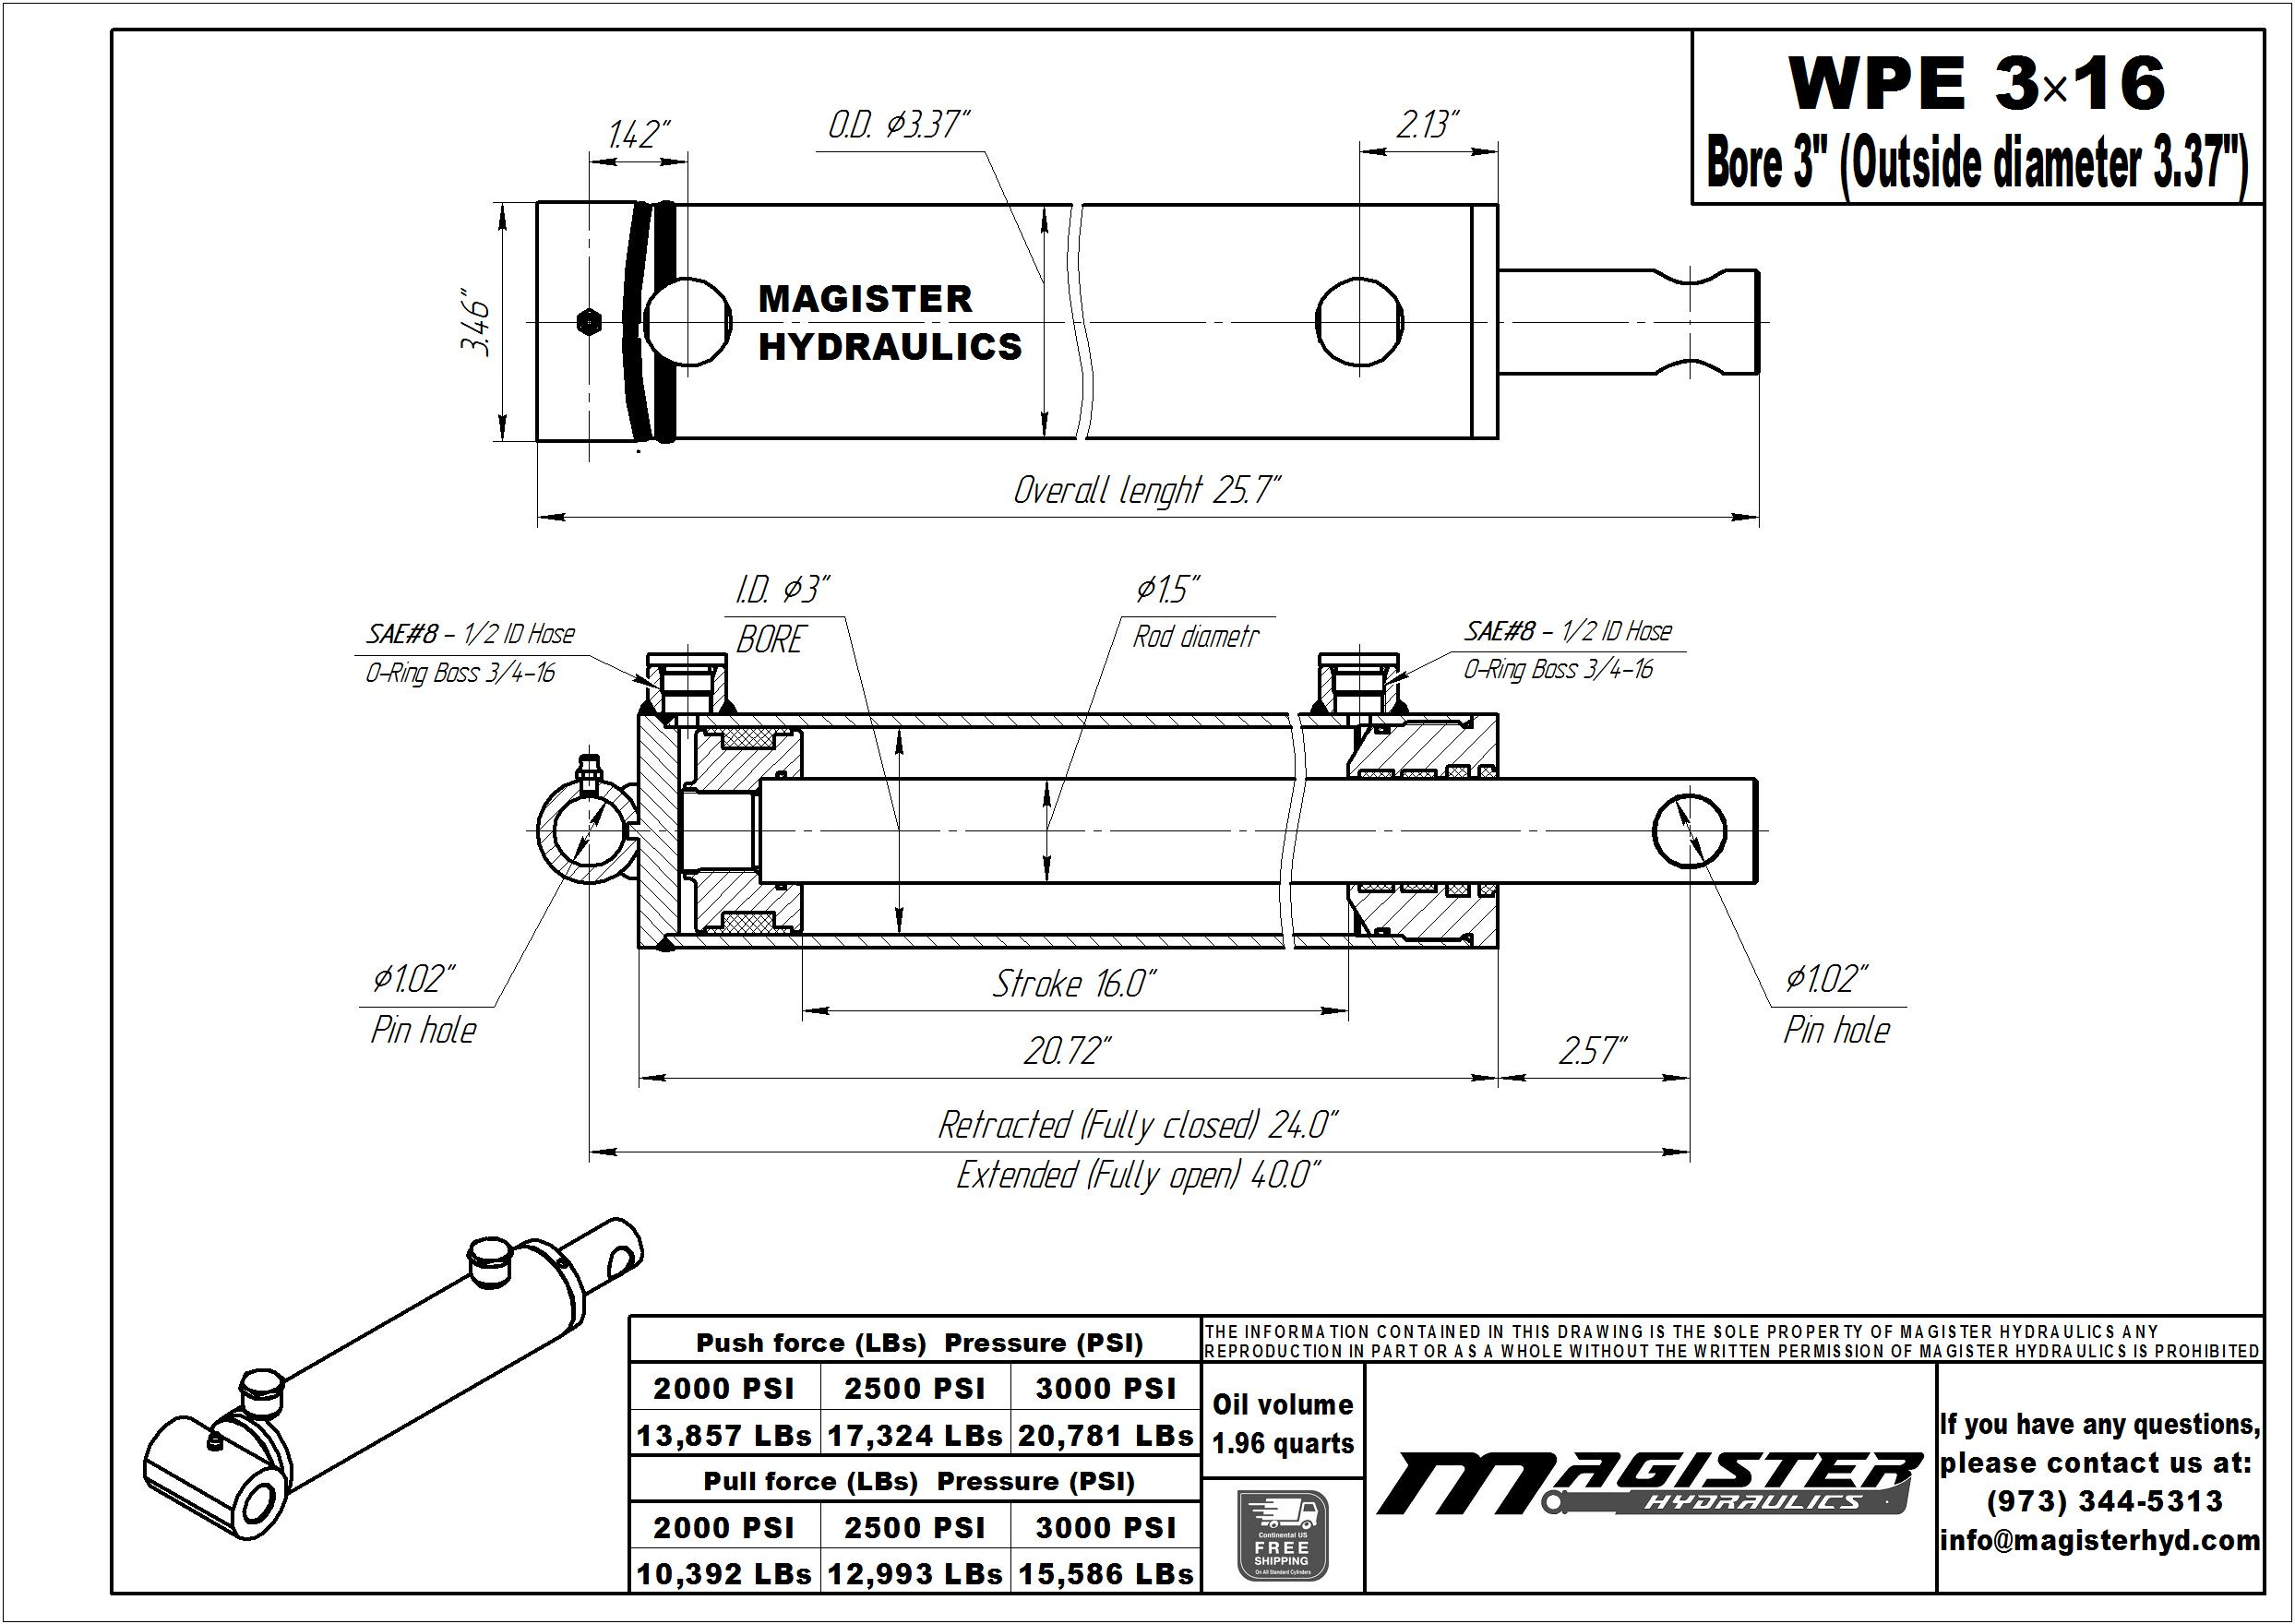 3 bore x 16 stroke hydraulic cylinder, welded pin eye double acting cylinder | Magister Hydraulics